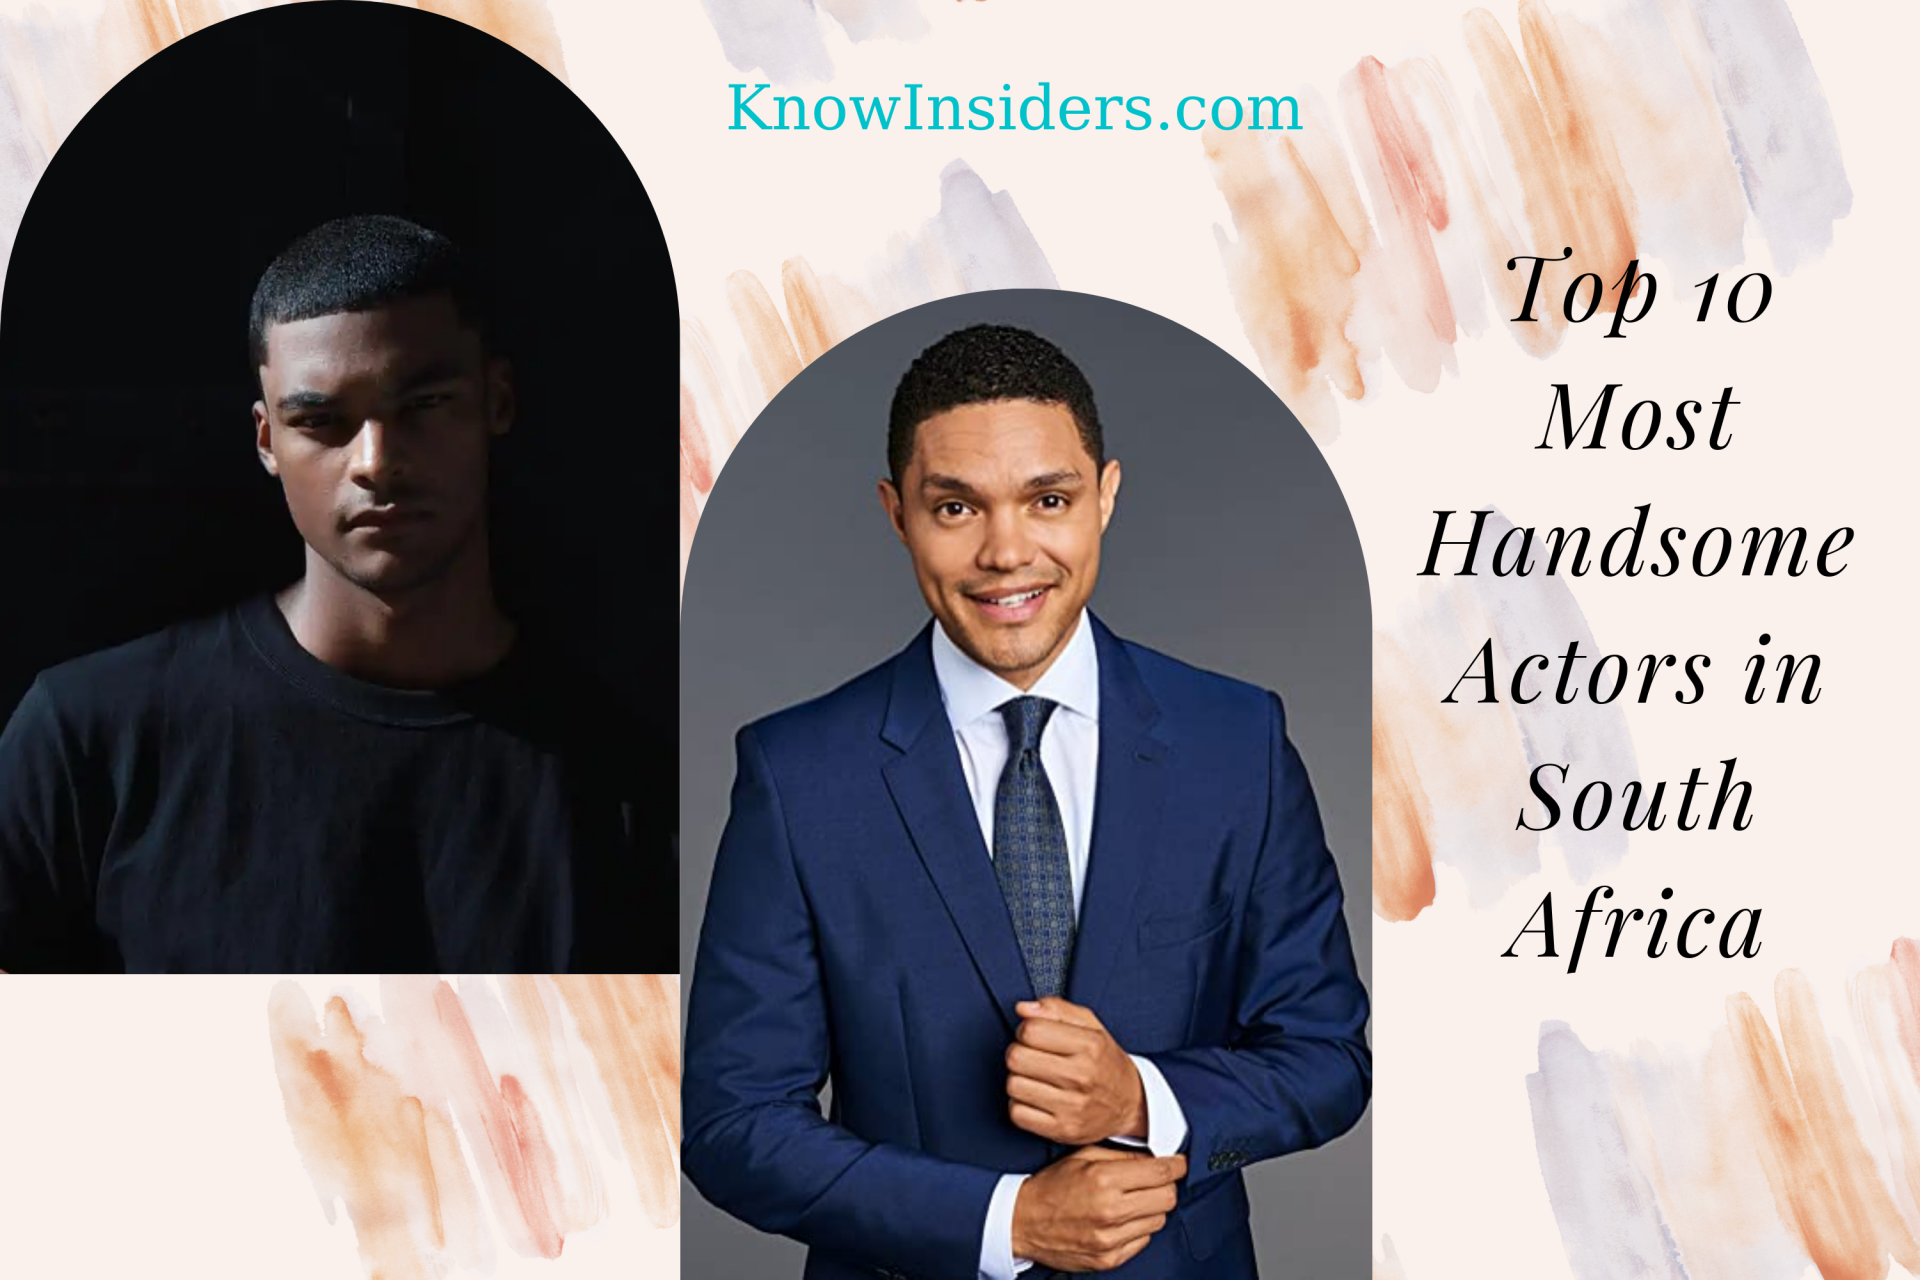 Top 10 Most Handsome Actors in South Africa